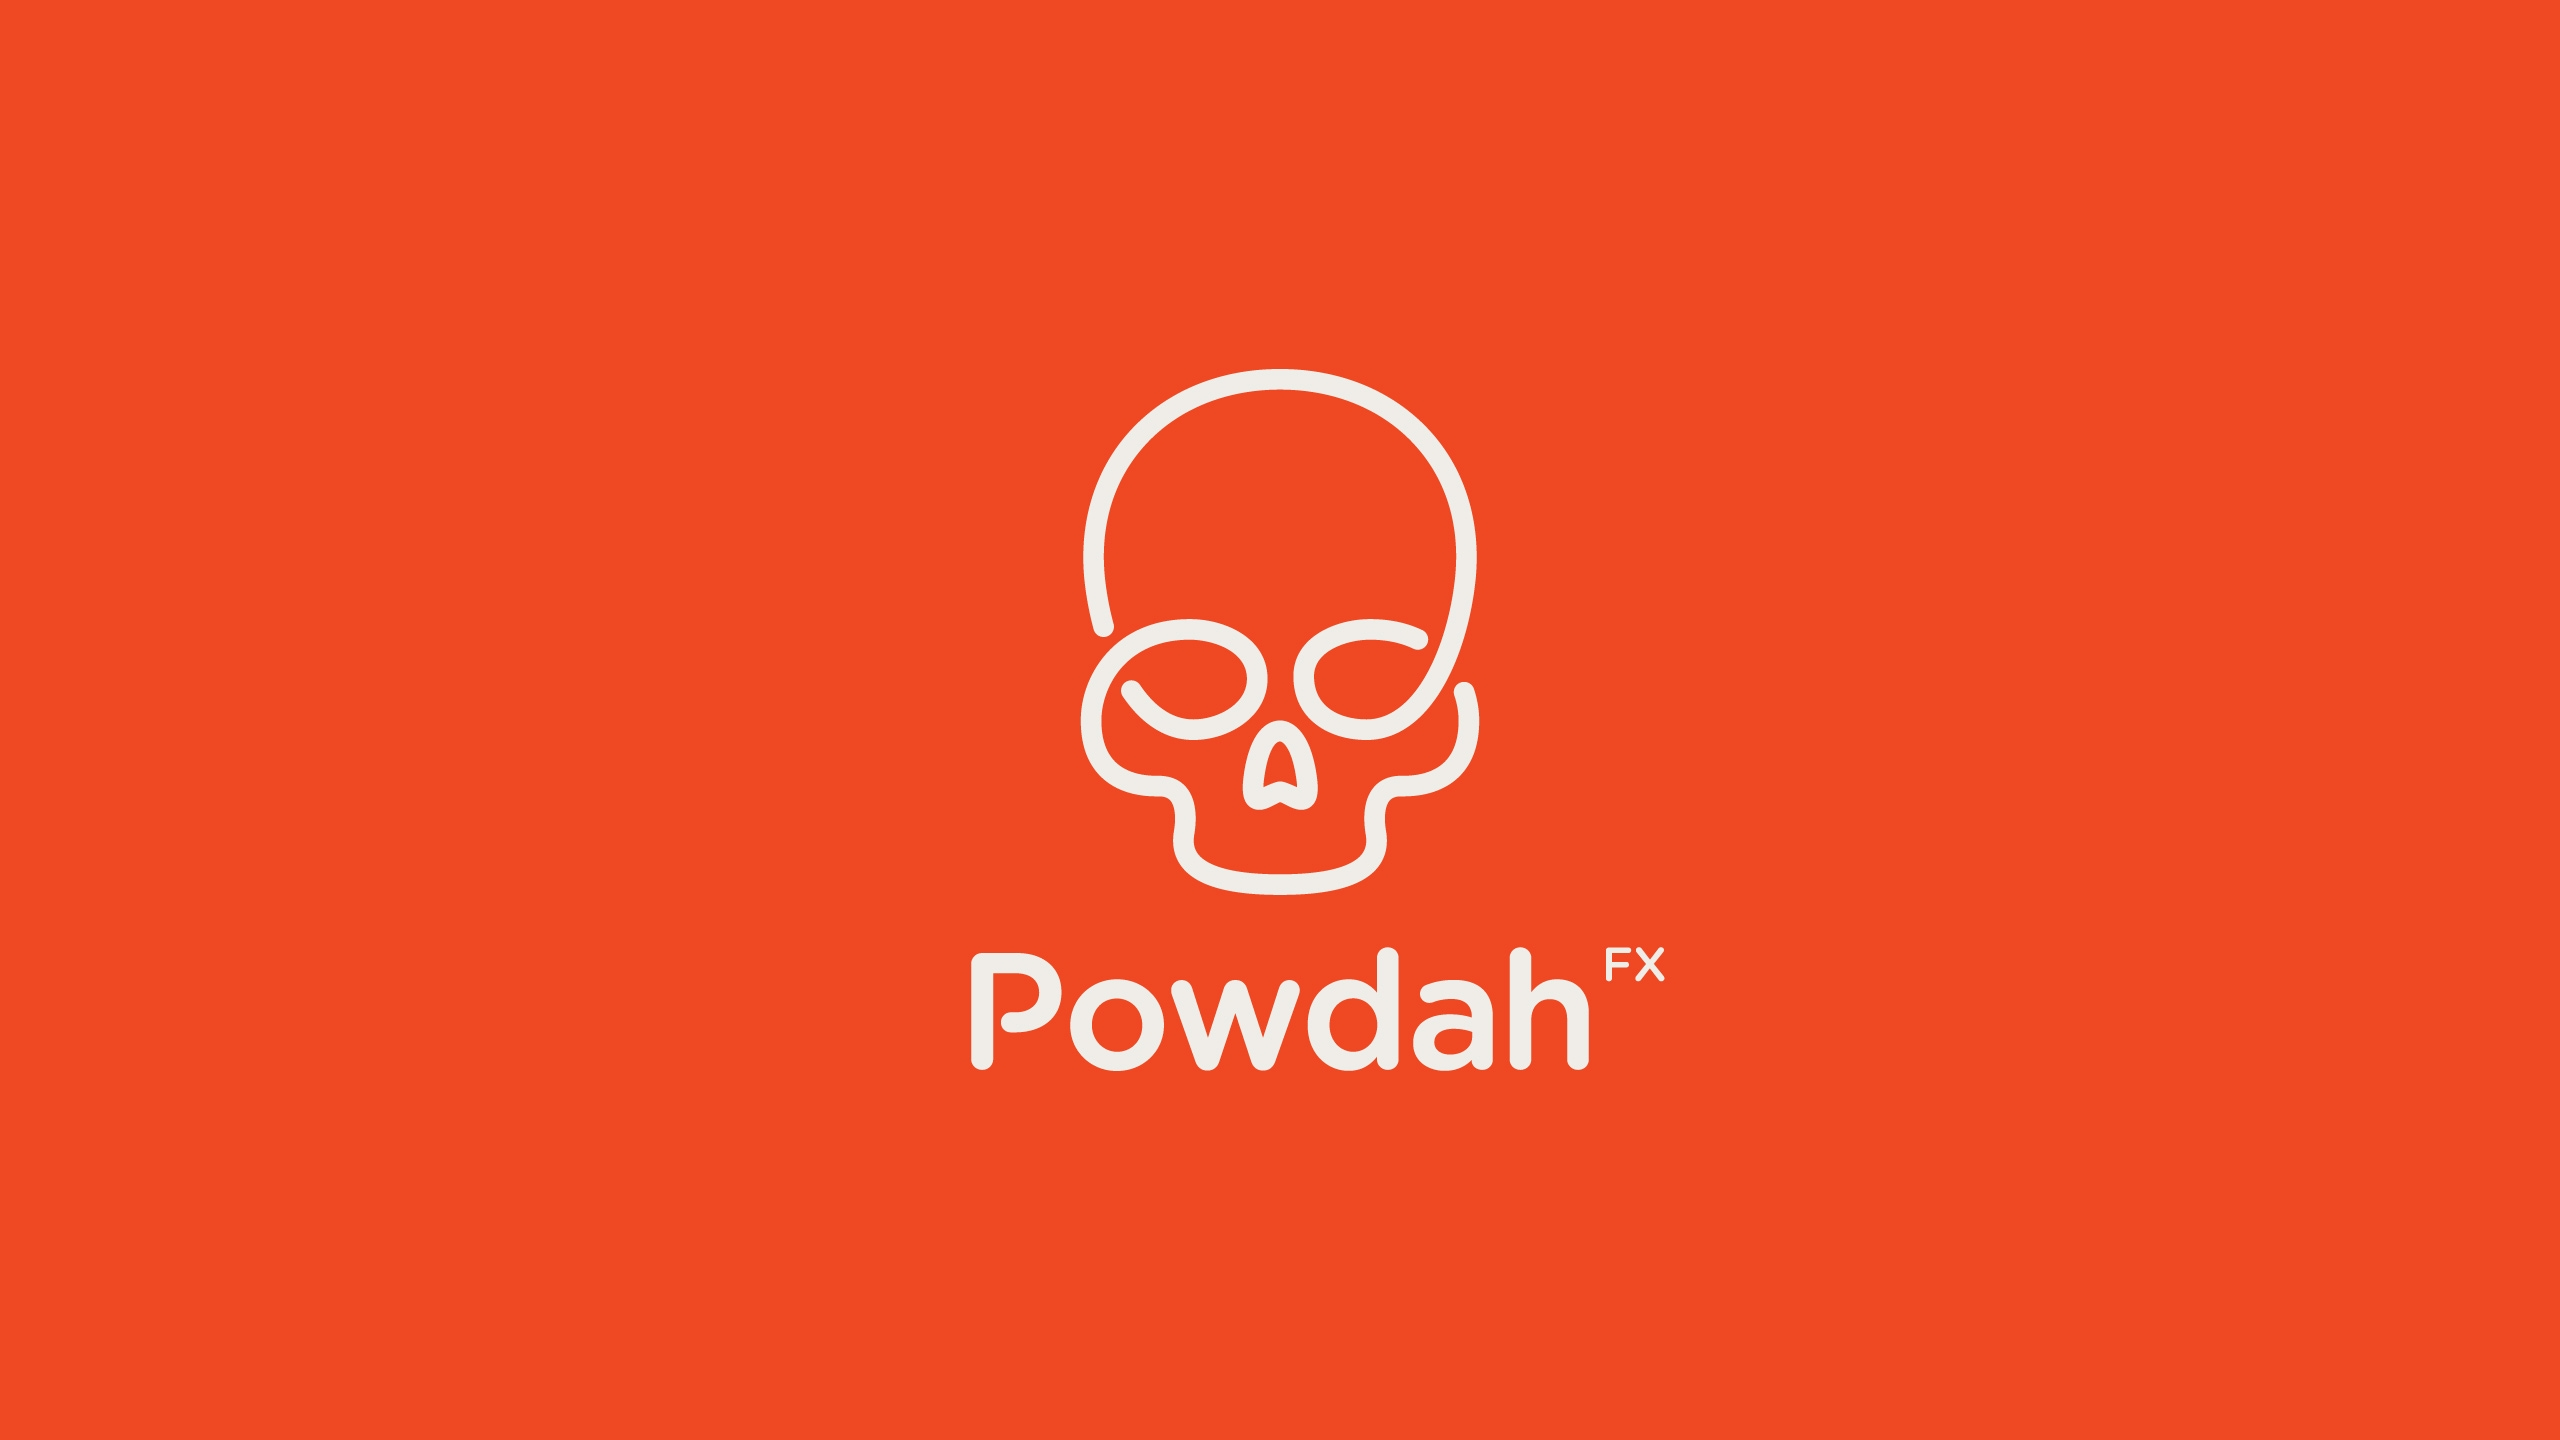 @powdah Cover Image